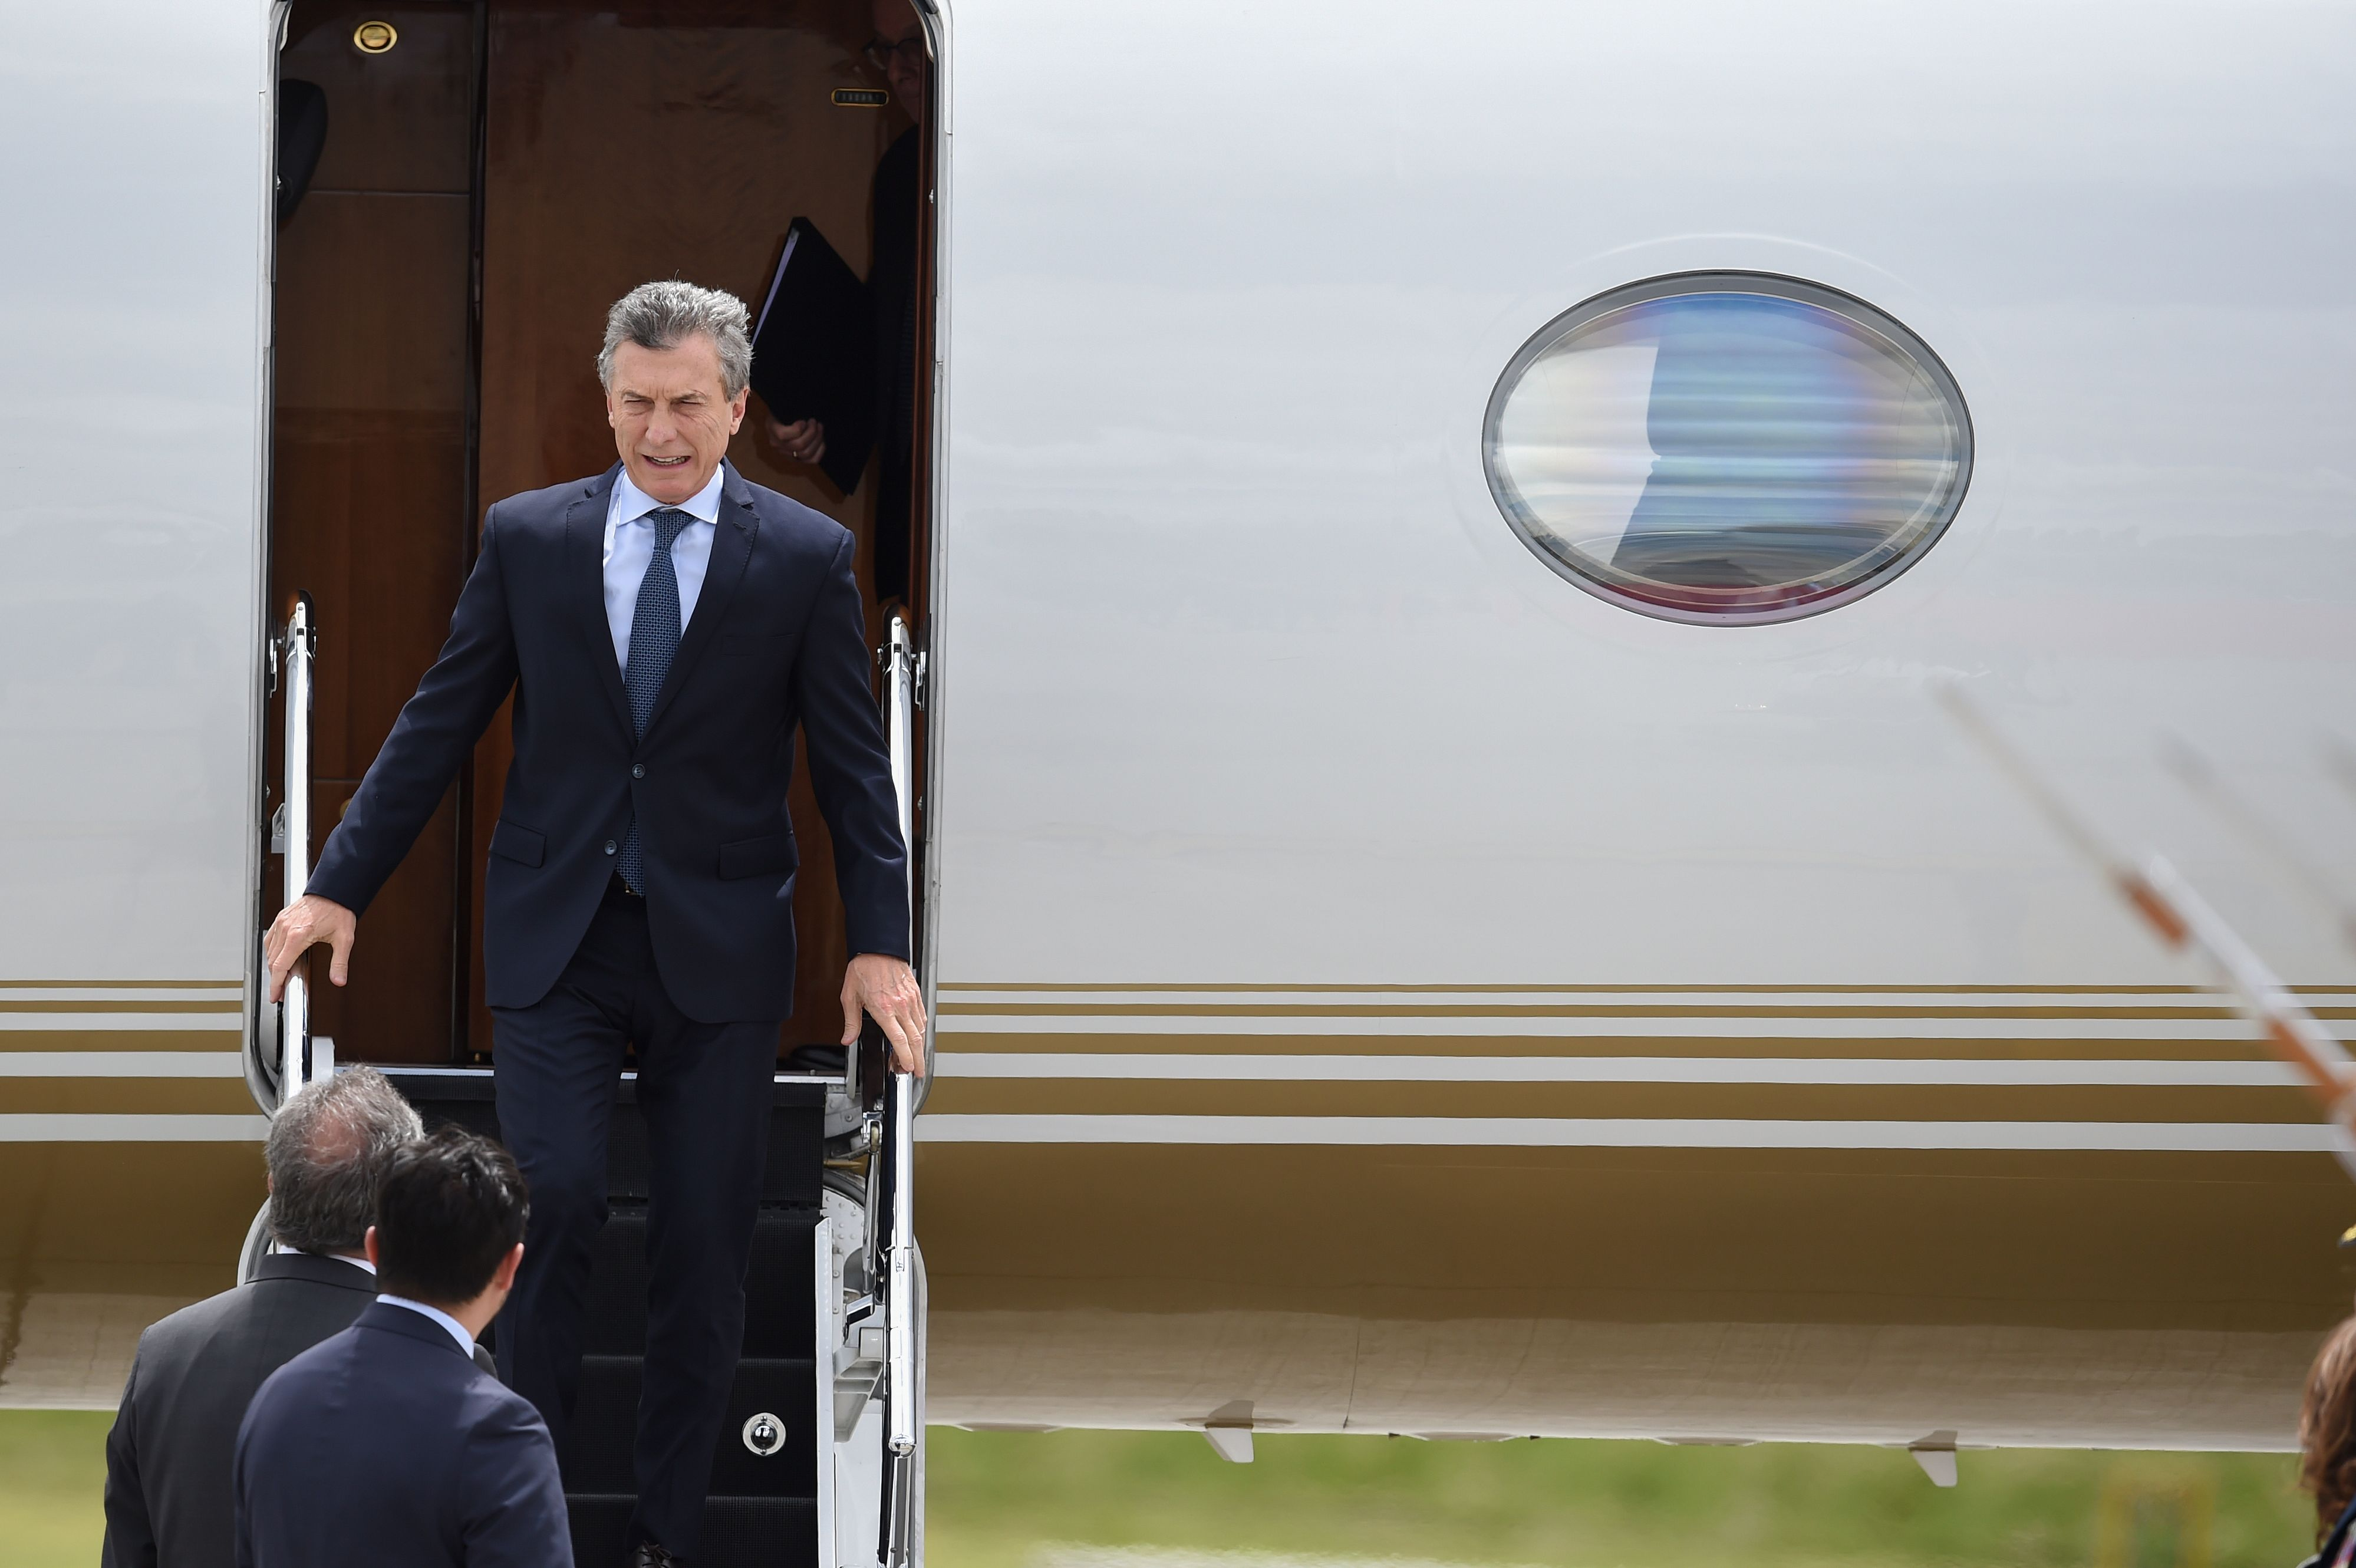 Argentine President Mauricio Macri arrives on August 7, 2018 at the CATAM military airport in Bogota, where he will attend Colombia's President Ivan Duque swearing-in ceremony. - Duque has his work cut out for him as he takes office Tuesday amid heightened tensions with neighbouring Venezuela and the lingering difficulties of peace-building with the nation's rebel groups. (Photo by Diana SANCHEZ / AFP) (Photo credit should read DIANA SANCHEZ/AFP/Getty Images)